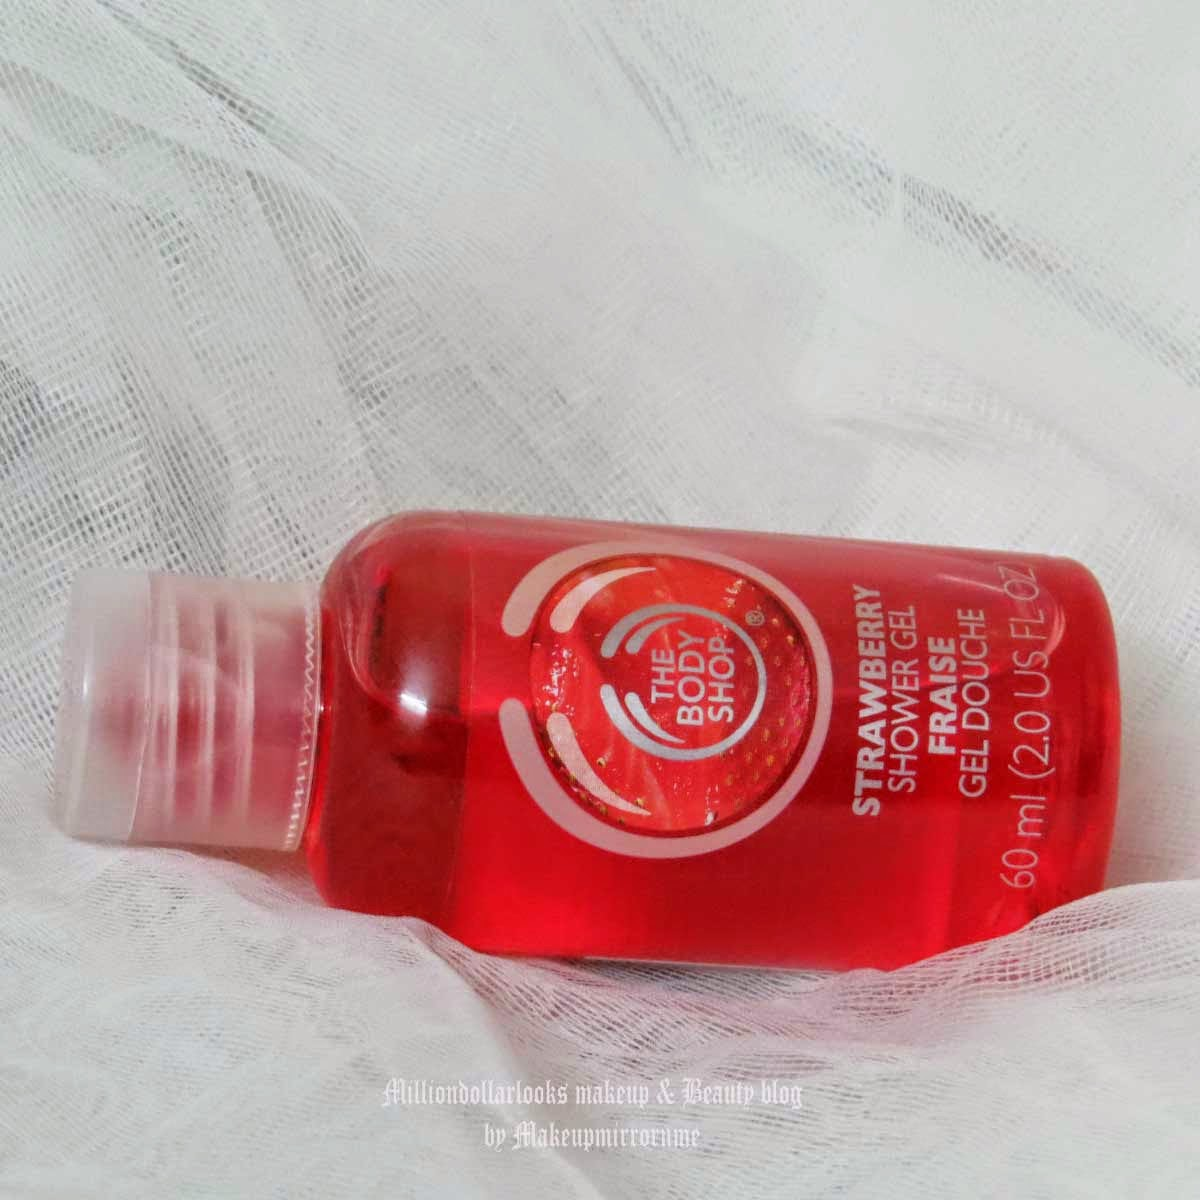 The Body Shop Strawberry Shower Gel Review, Pictures & Price in India, Best of The Body shop products, The body shop shower gel range, The body shop strawberry range review, Indian beauty blog, Indian beauty blogger, Indian makeup blogger, Indian makeup and beauty blog, Best bath products India, Best strawberry shower gel, Strawberry fragrance, Shower gel review India, The body shop india review